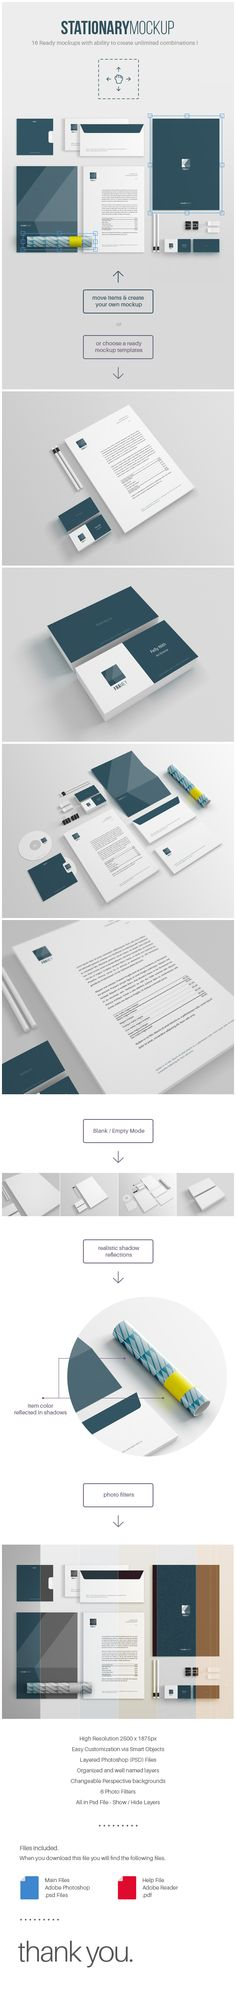 Free Stationery Mockup on Behance